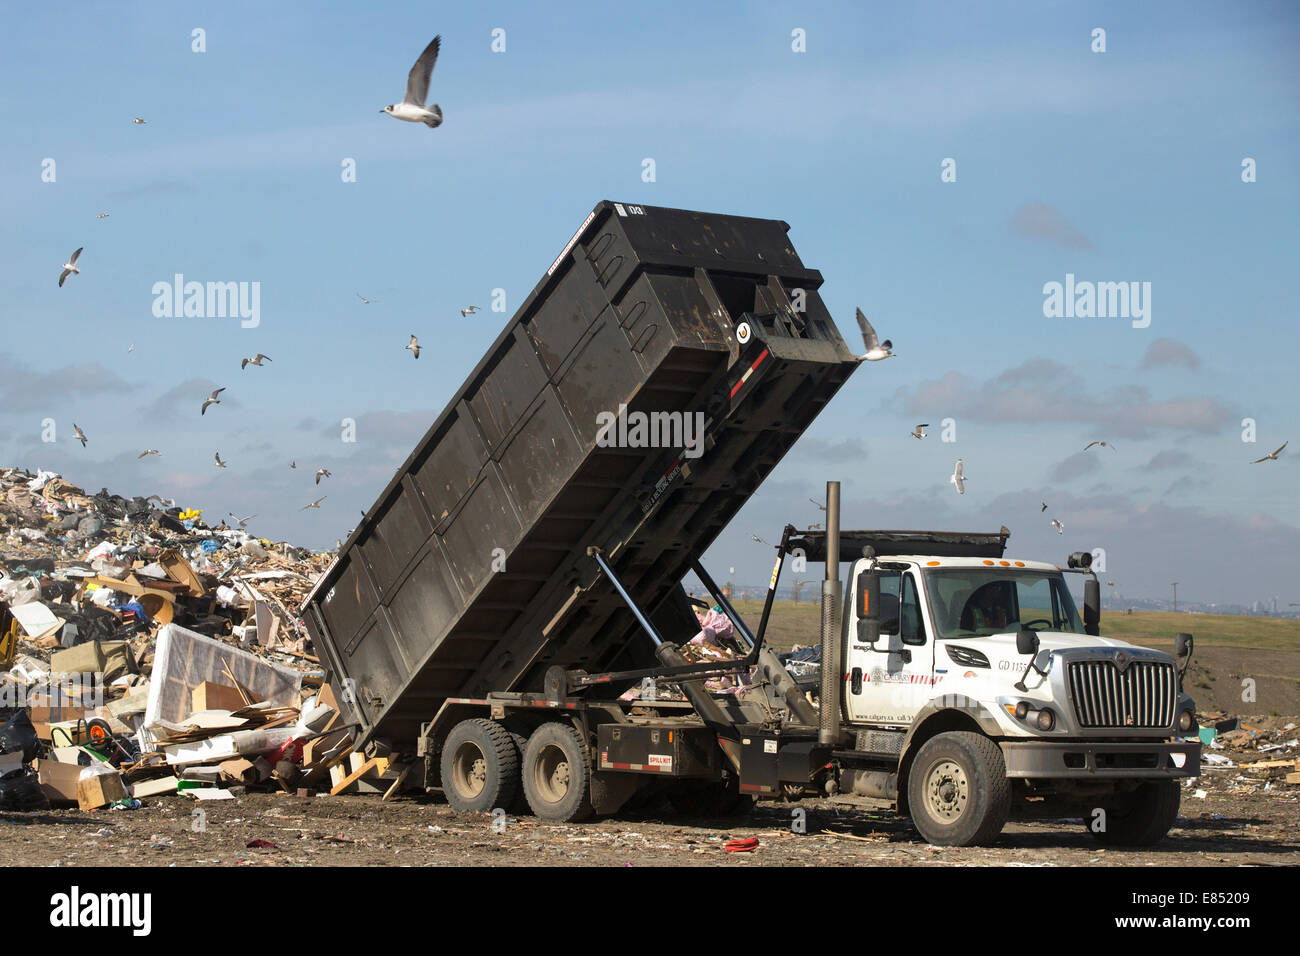 Truck dumping garbage in active landfill cell at Shepard Waste Management Facility. - Stock Image